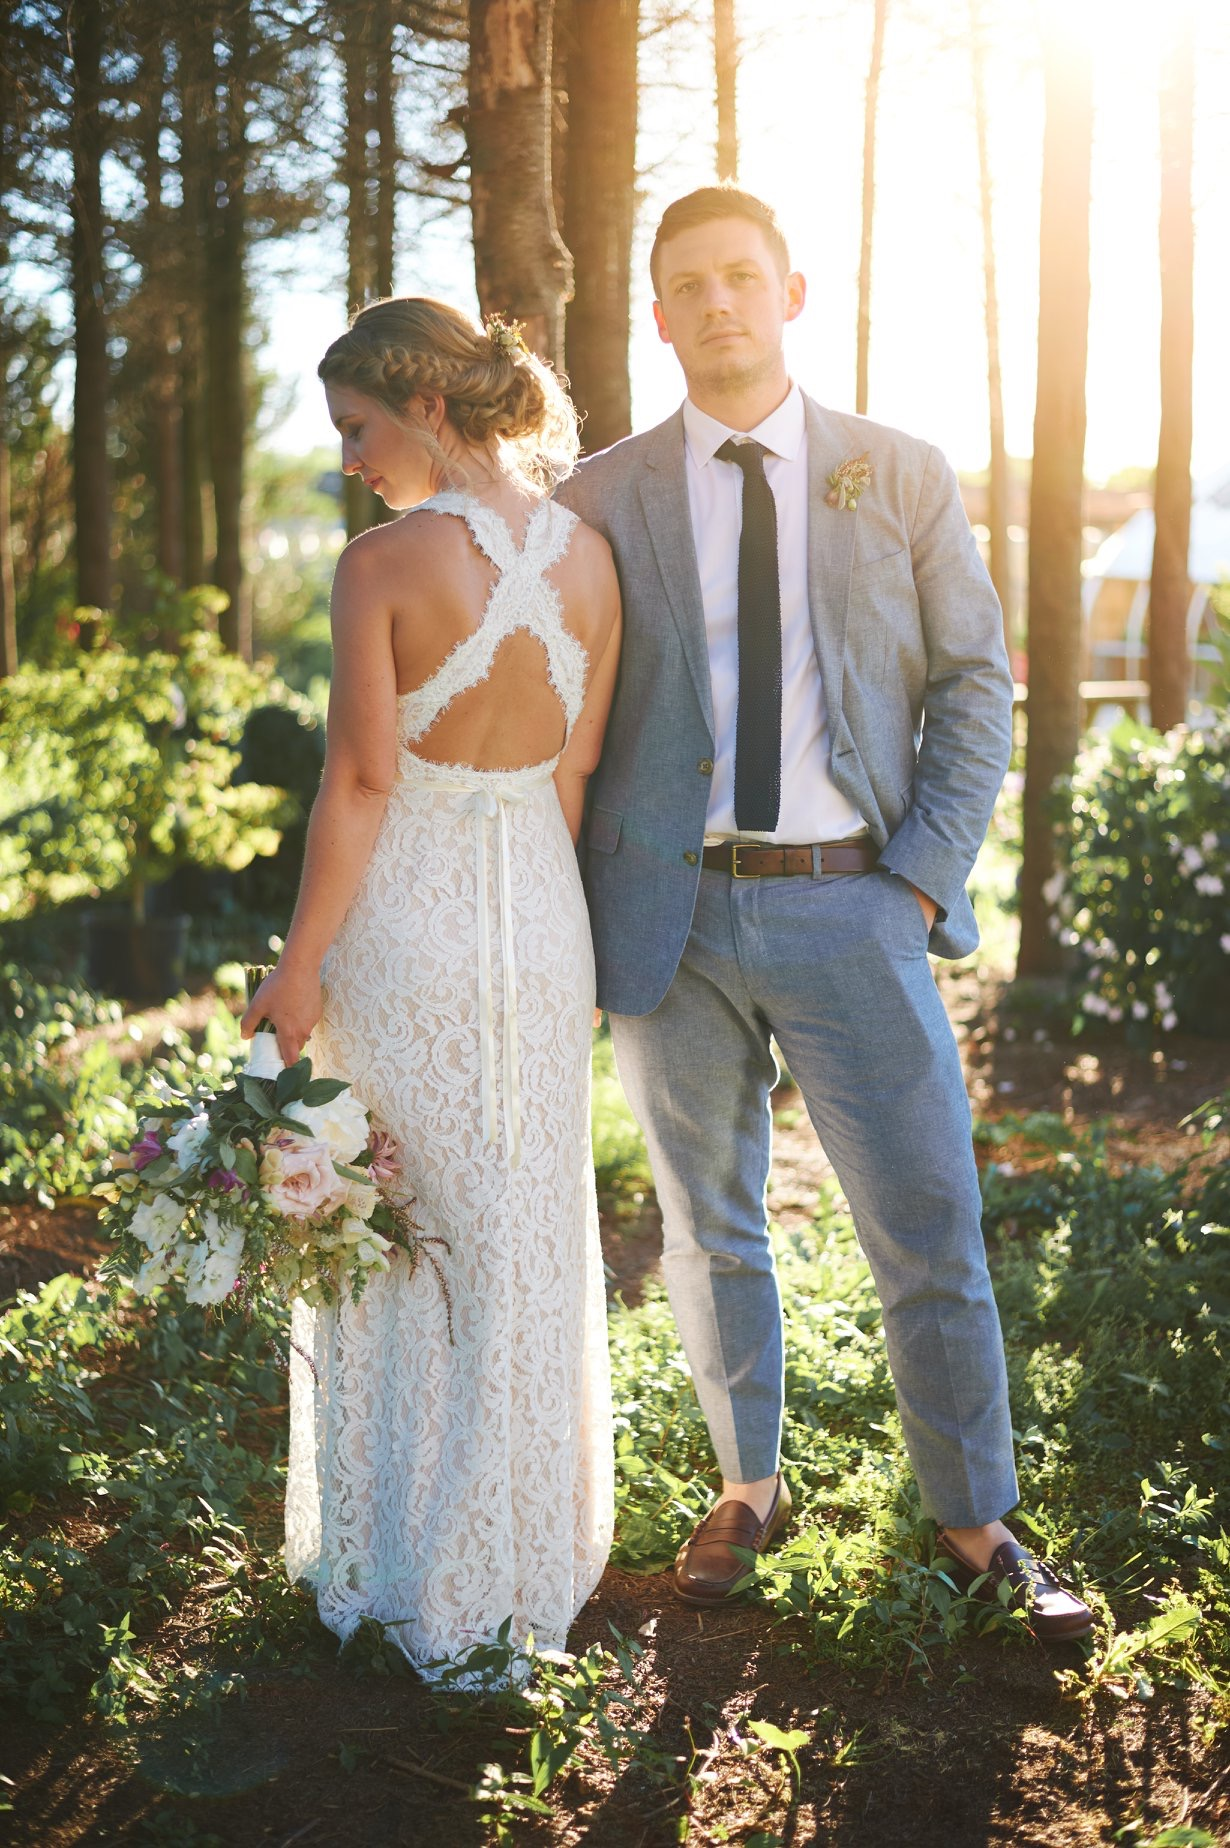 Bride and groom portrait photos during golden hour at The Farmers Daughter in Rhode Island - Pearl Weddings & Events